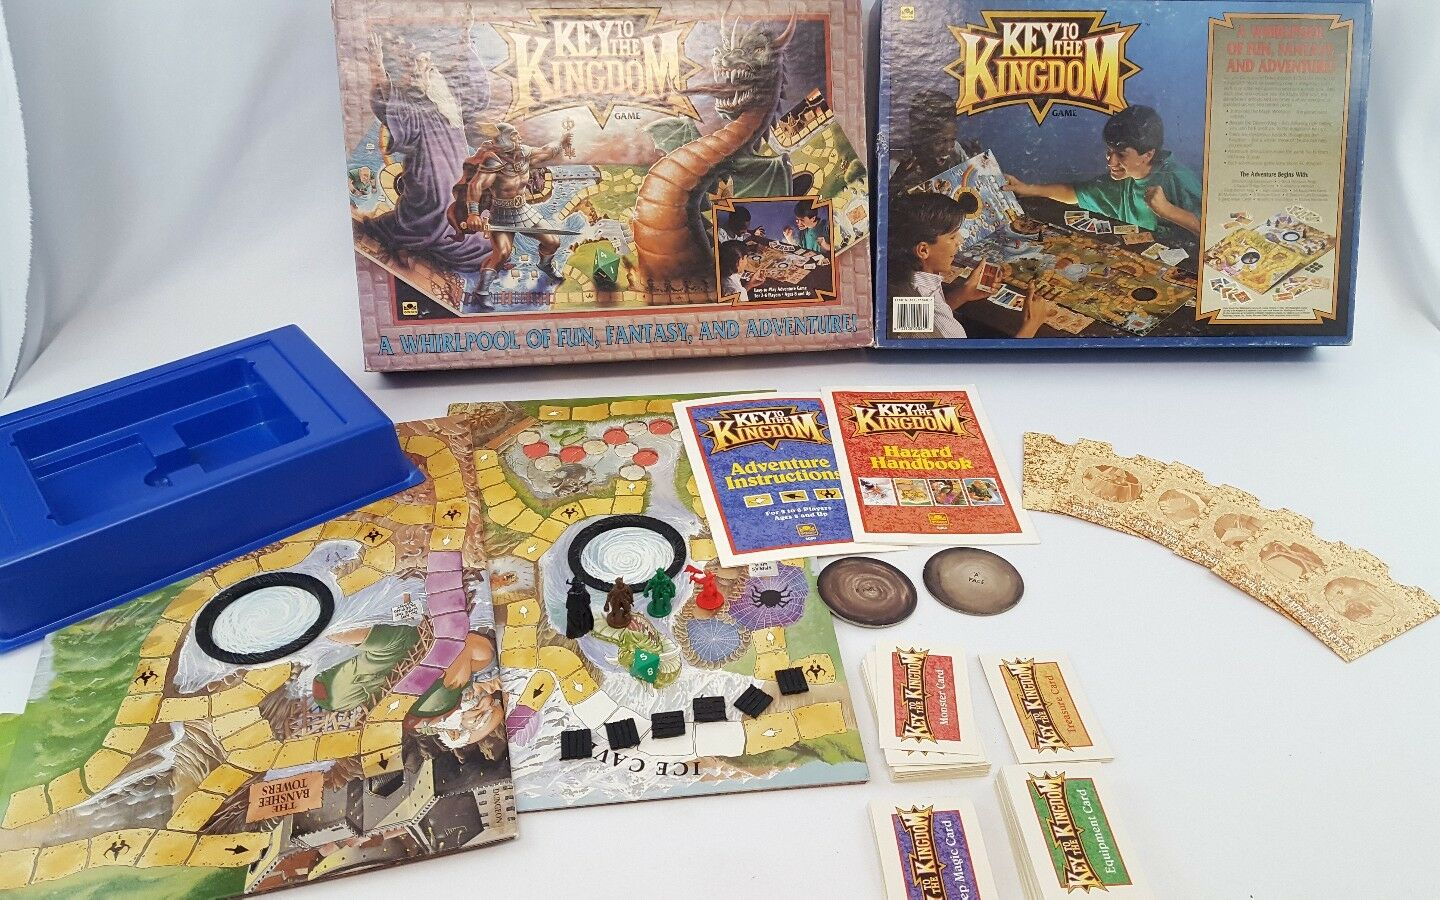 Vintage 1992 Key to the Kingdom Board Game Incomplete